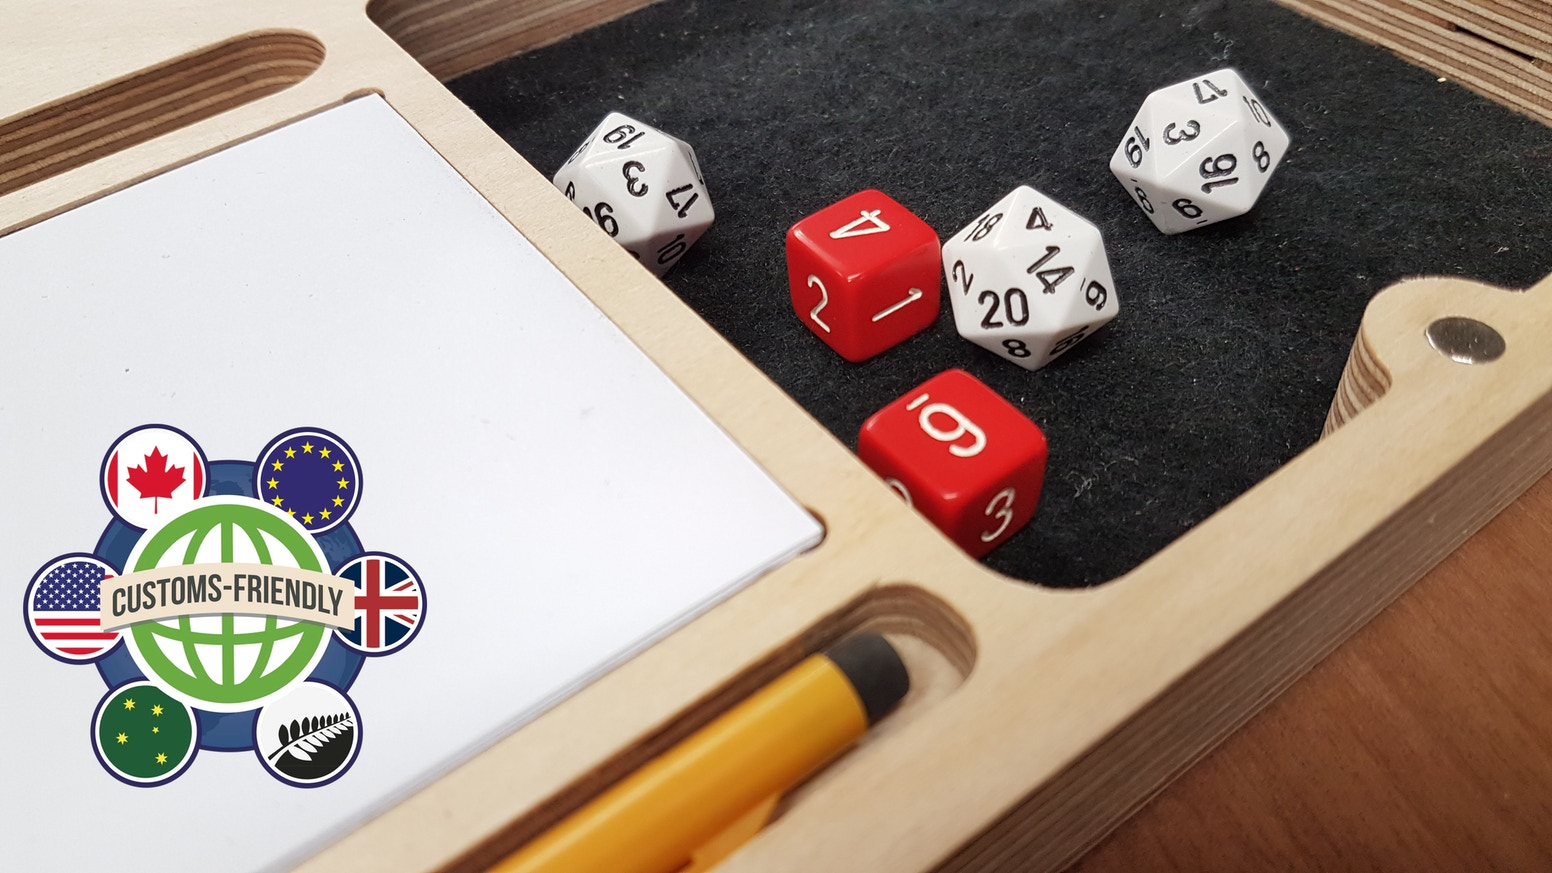 Play RPG games on the couch, in the car or anywhere you like. Play at the games table without anyone stealing your dice or pencil.